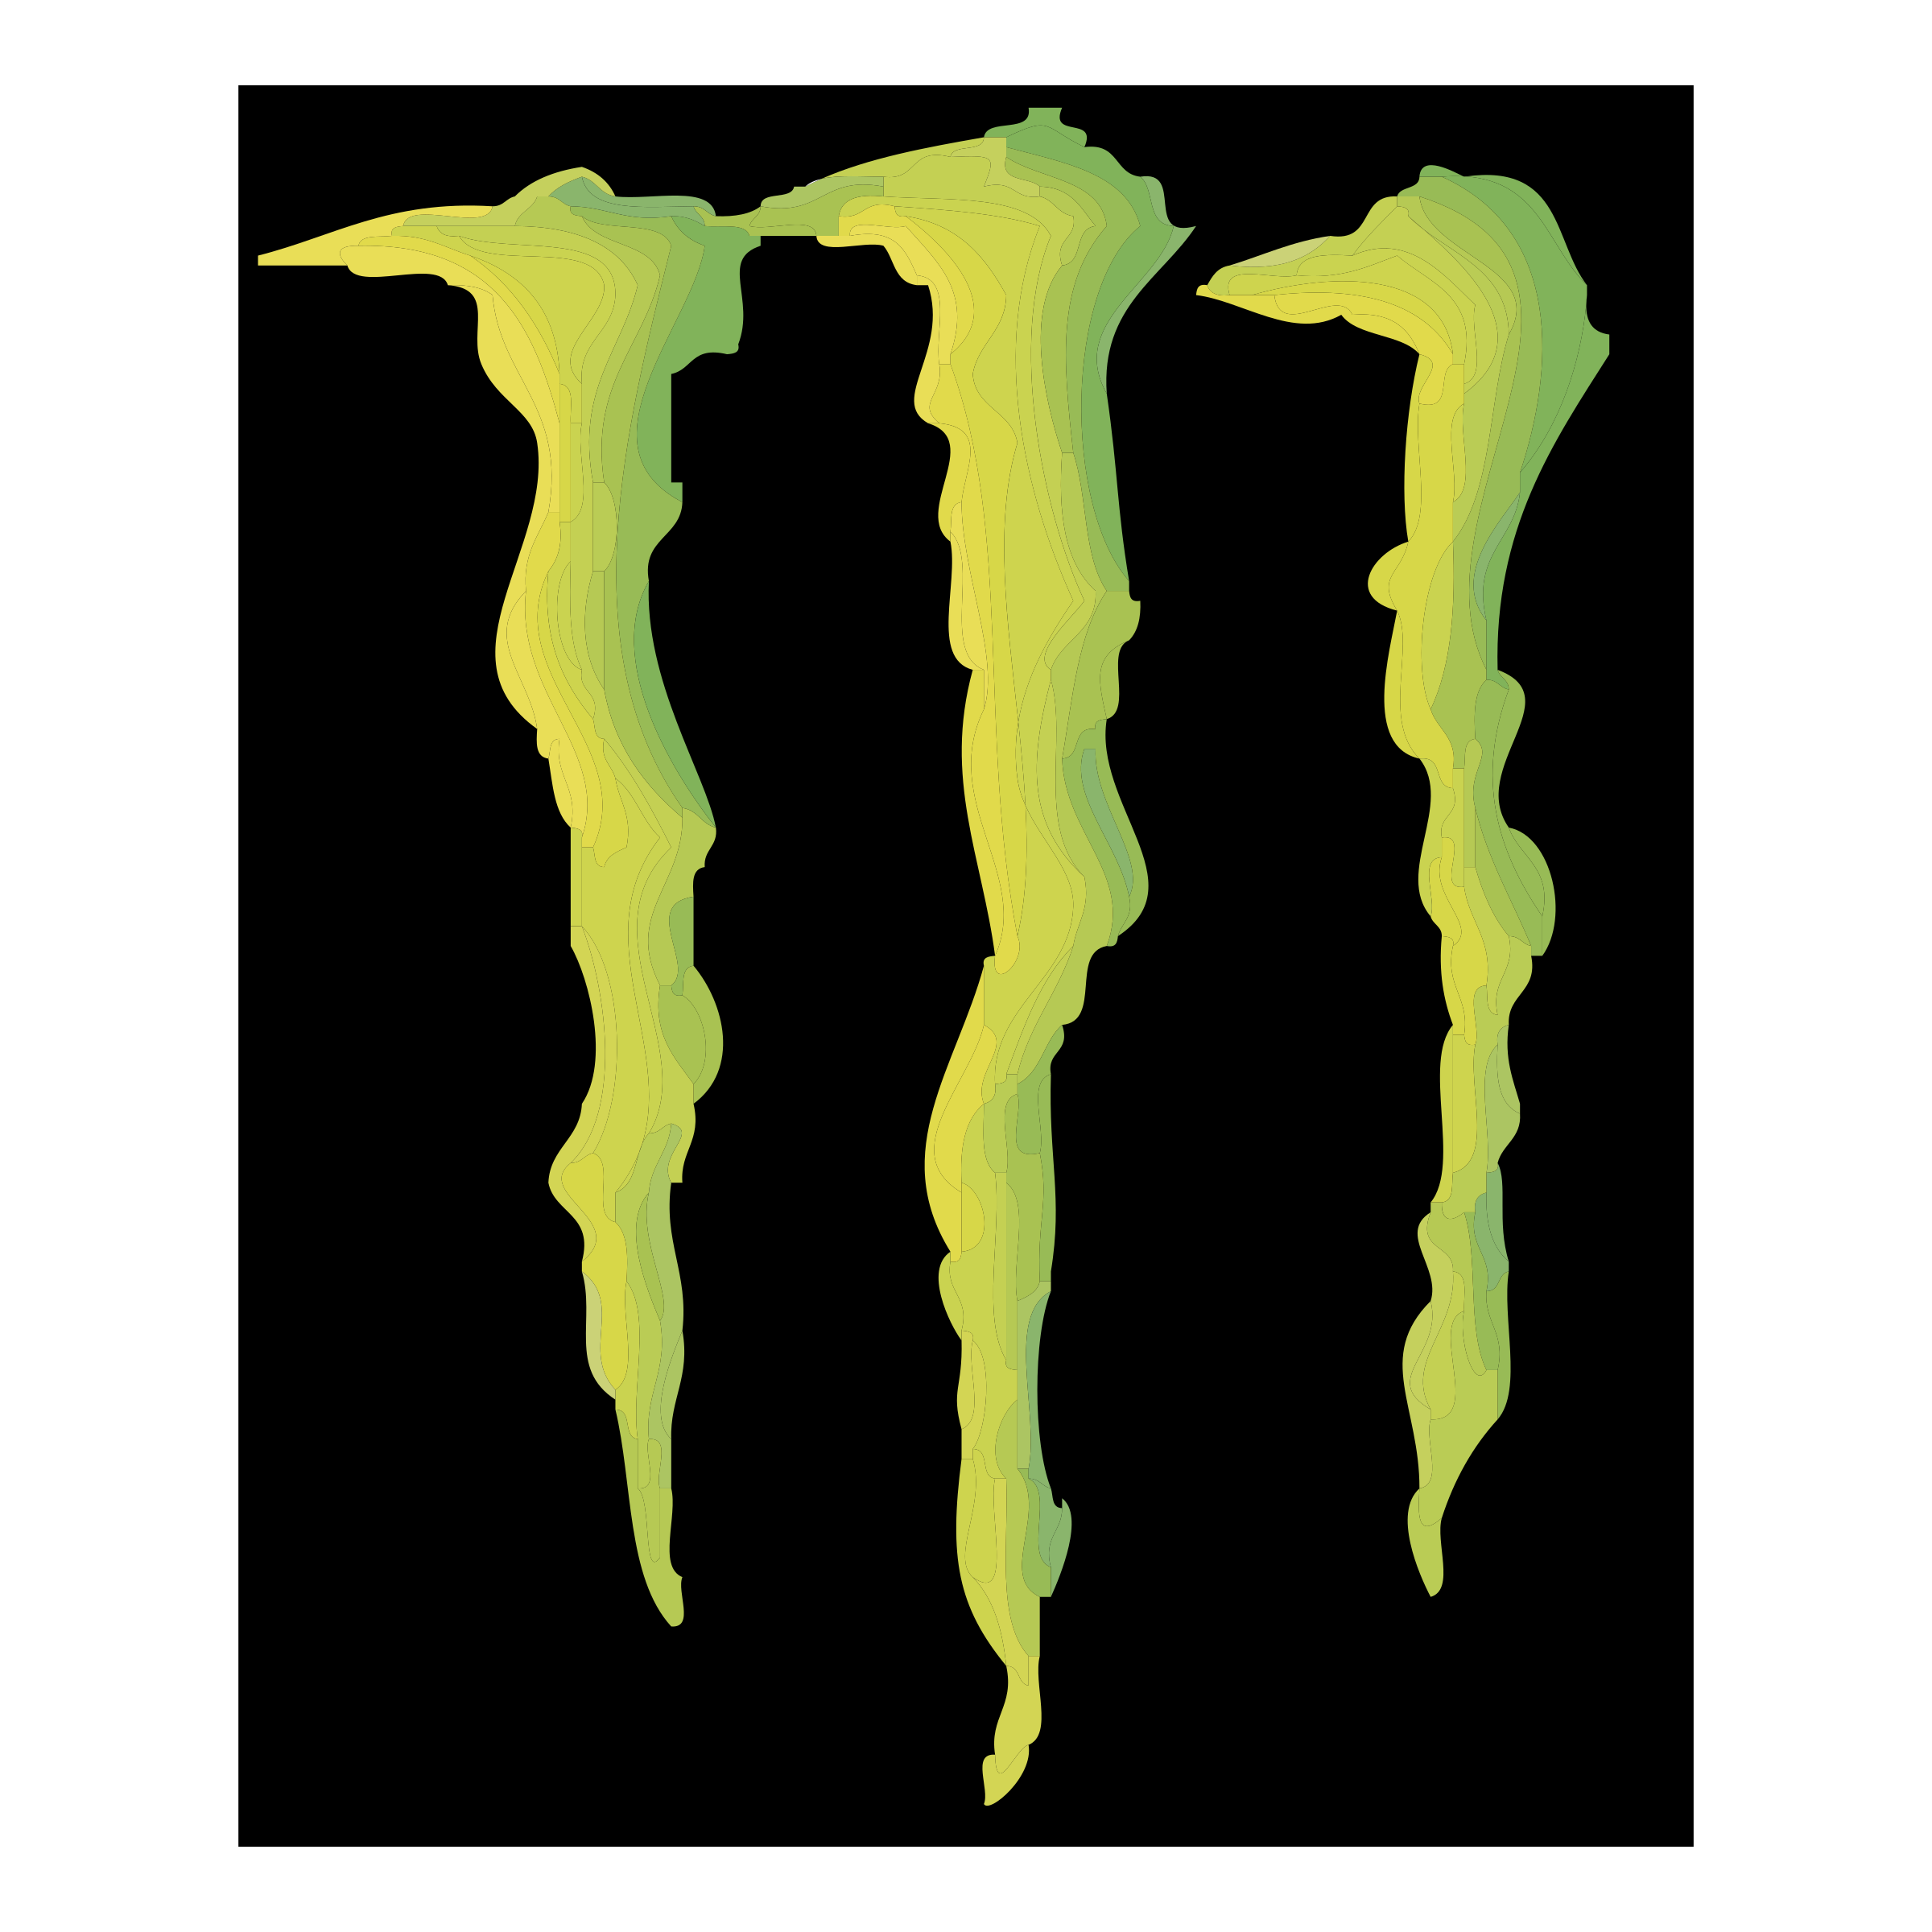 Vector monster logo. Energy beverage co png